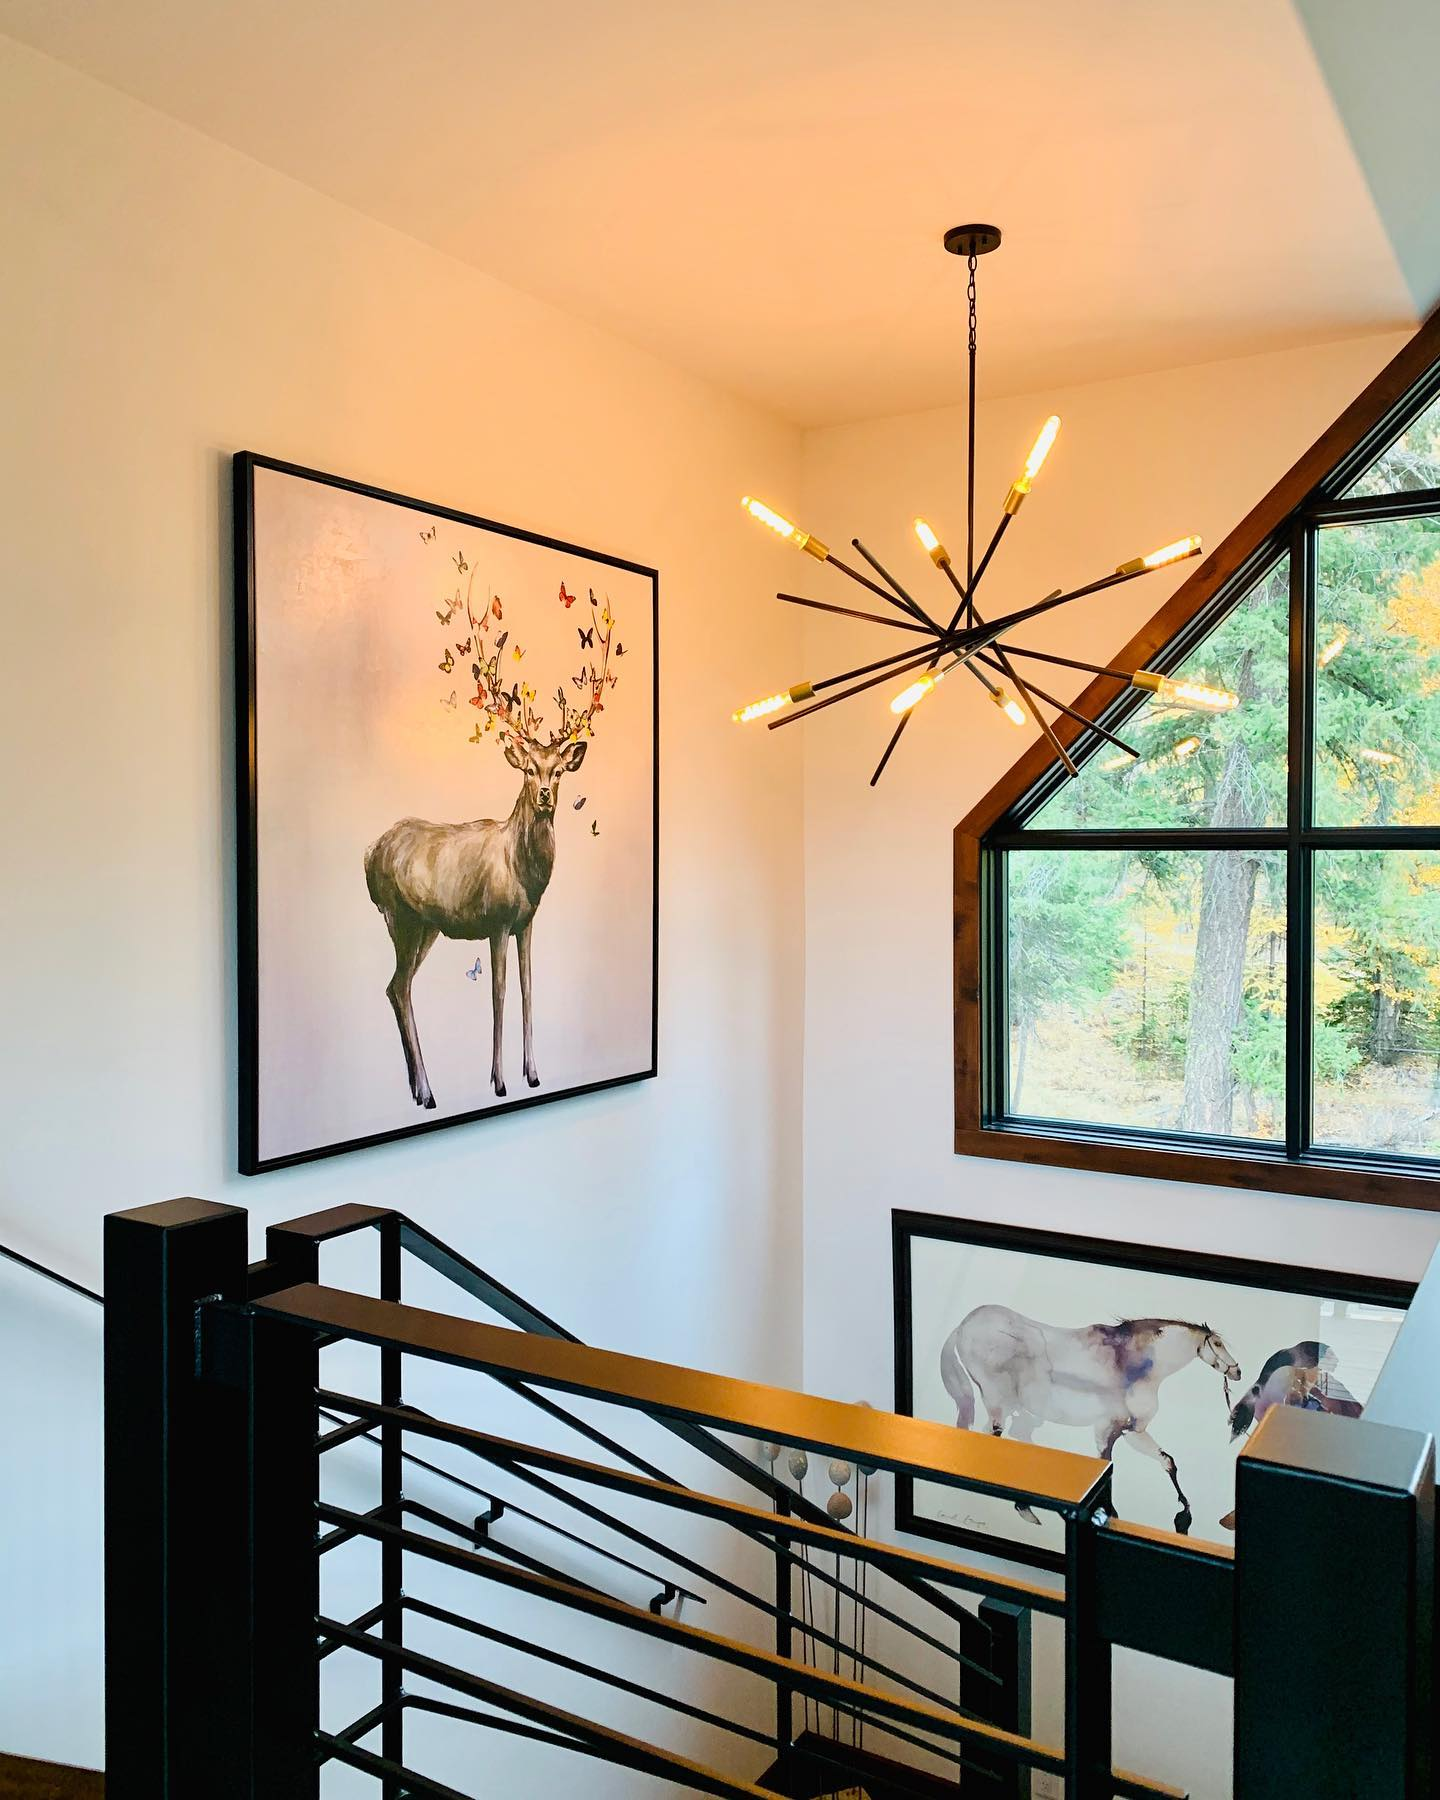 This railing. This light. This window. The decor. All so so good! whitefish custom home builder